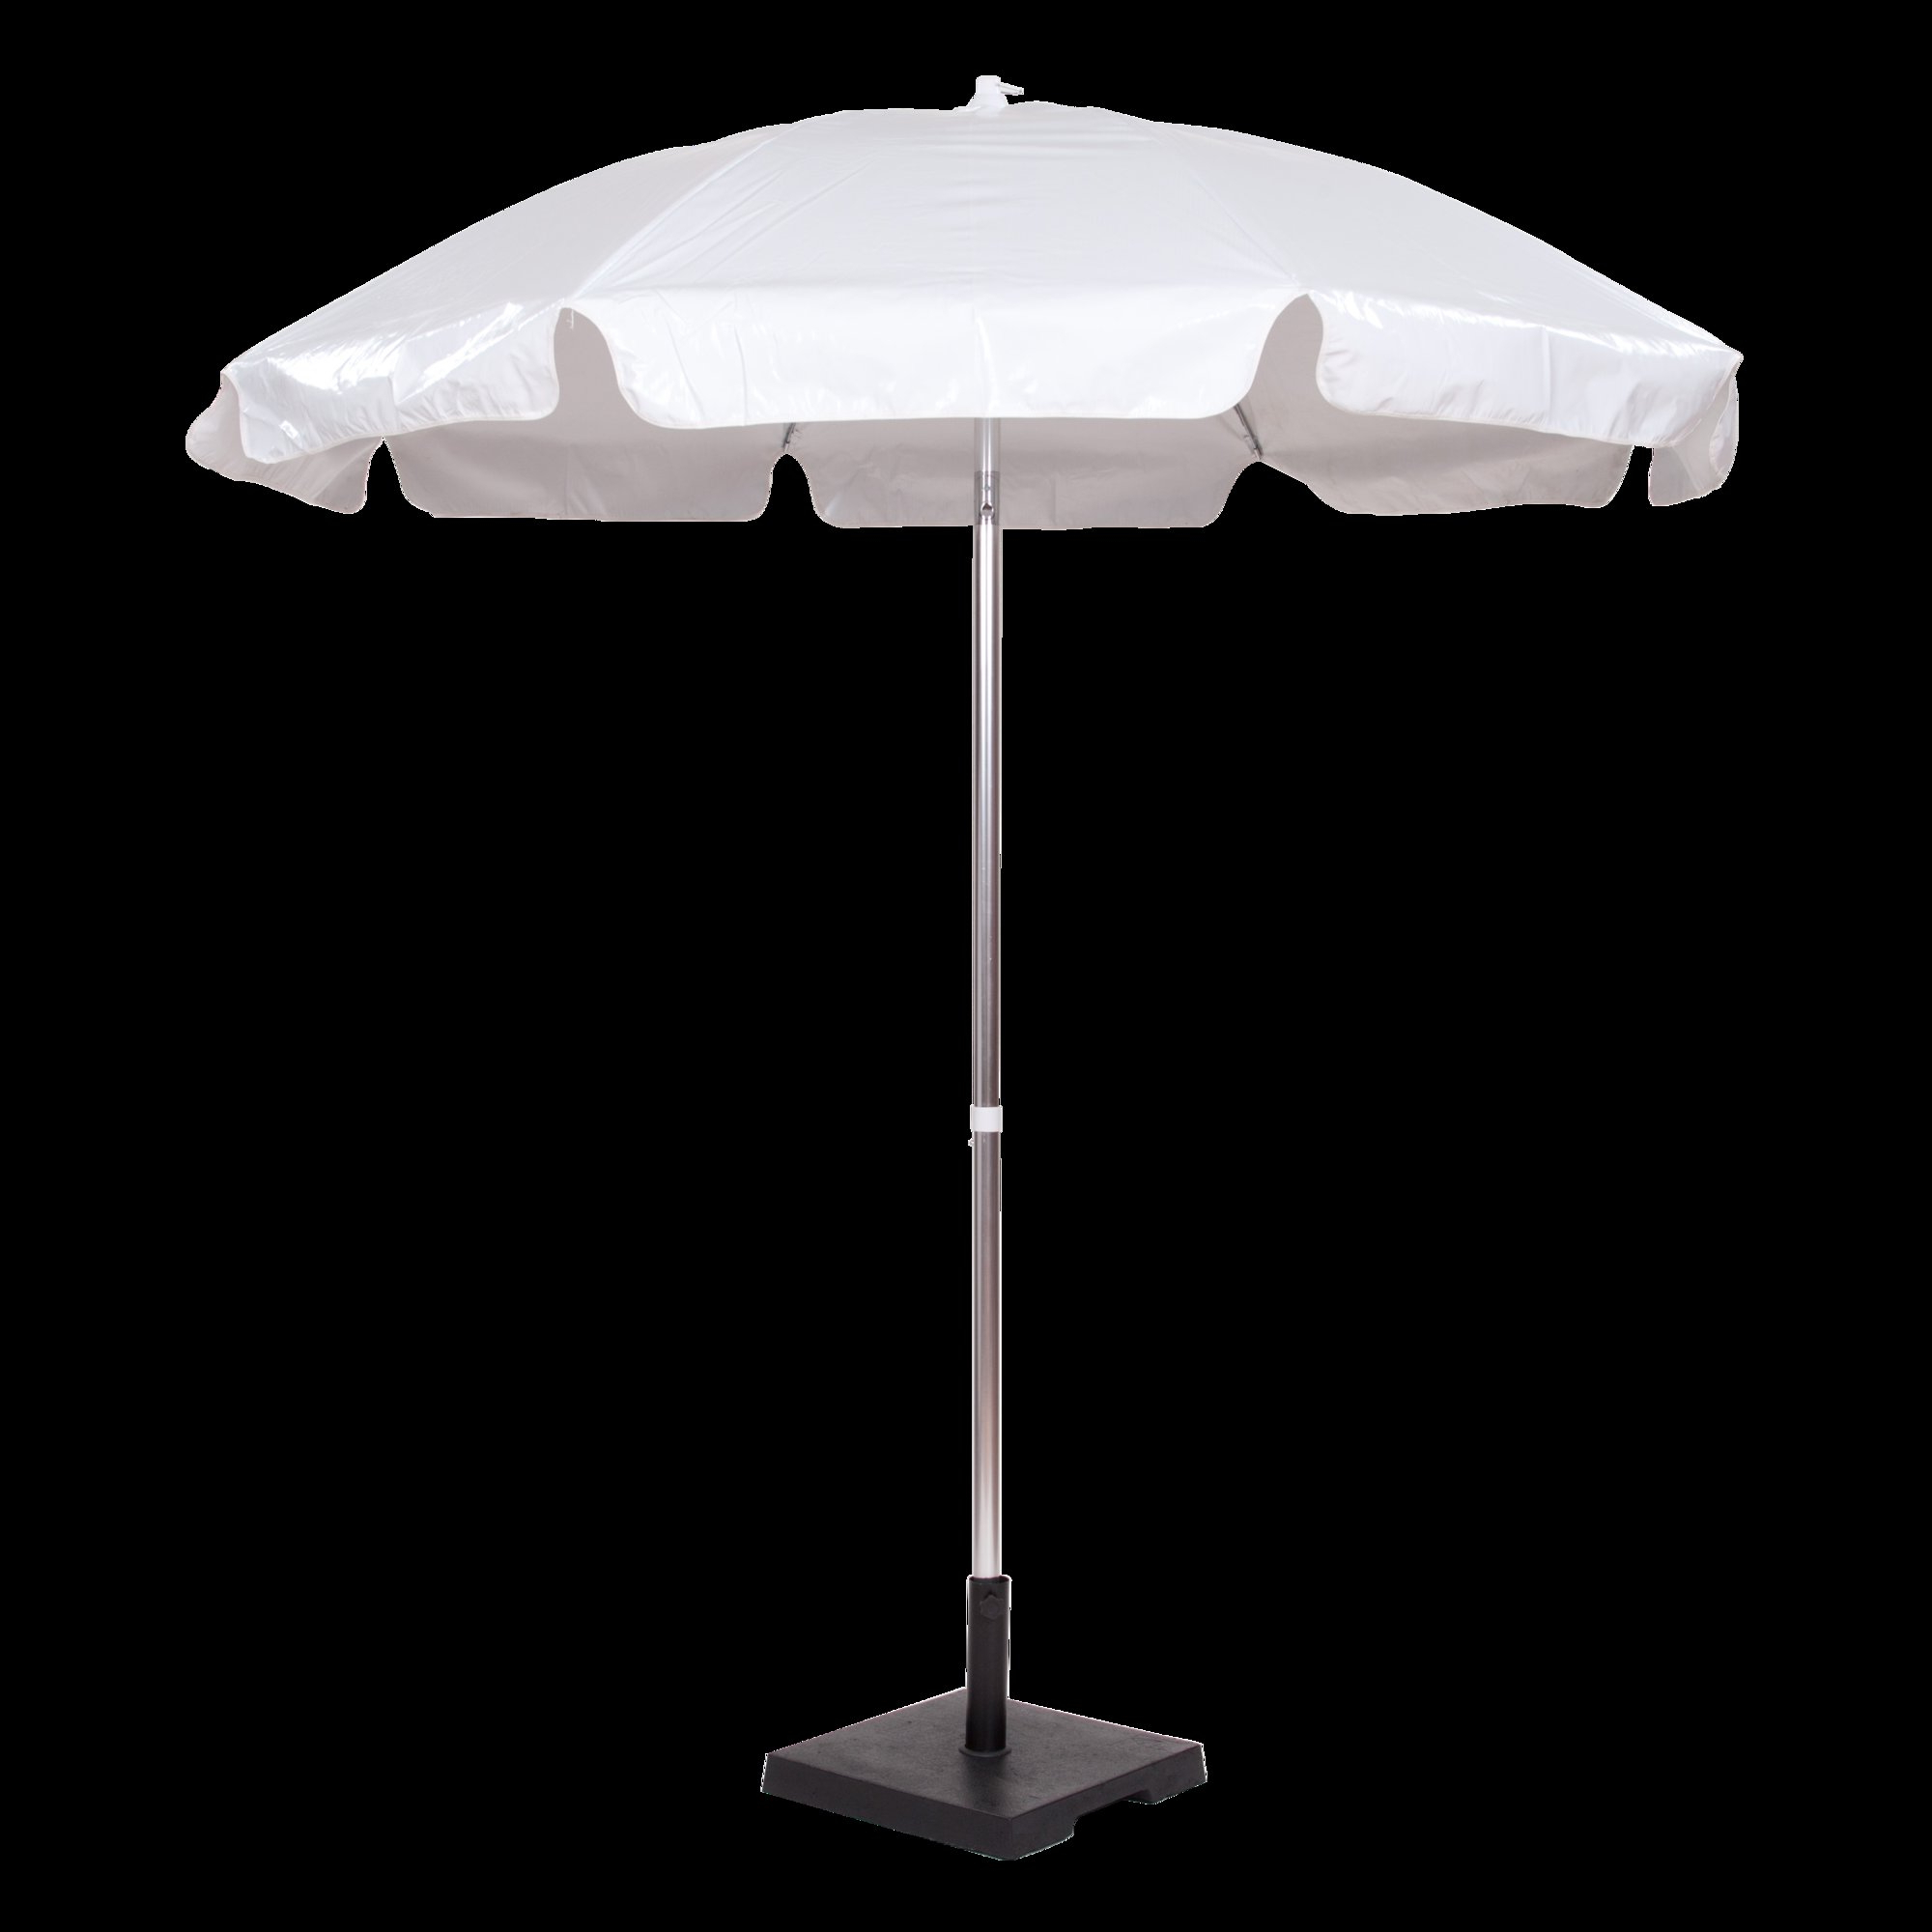 Widely Used Shropshire Market Umbrellas Throughout Details About Freeport Park Shropshire 7' Market Patio Umbrella (View 20 of 20)